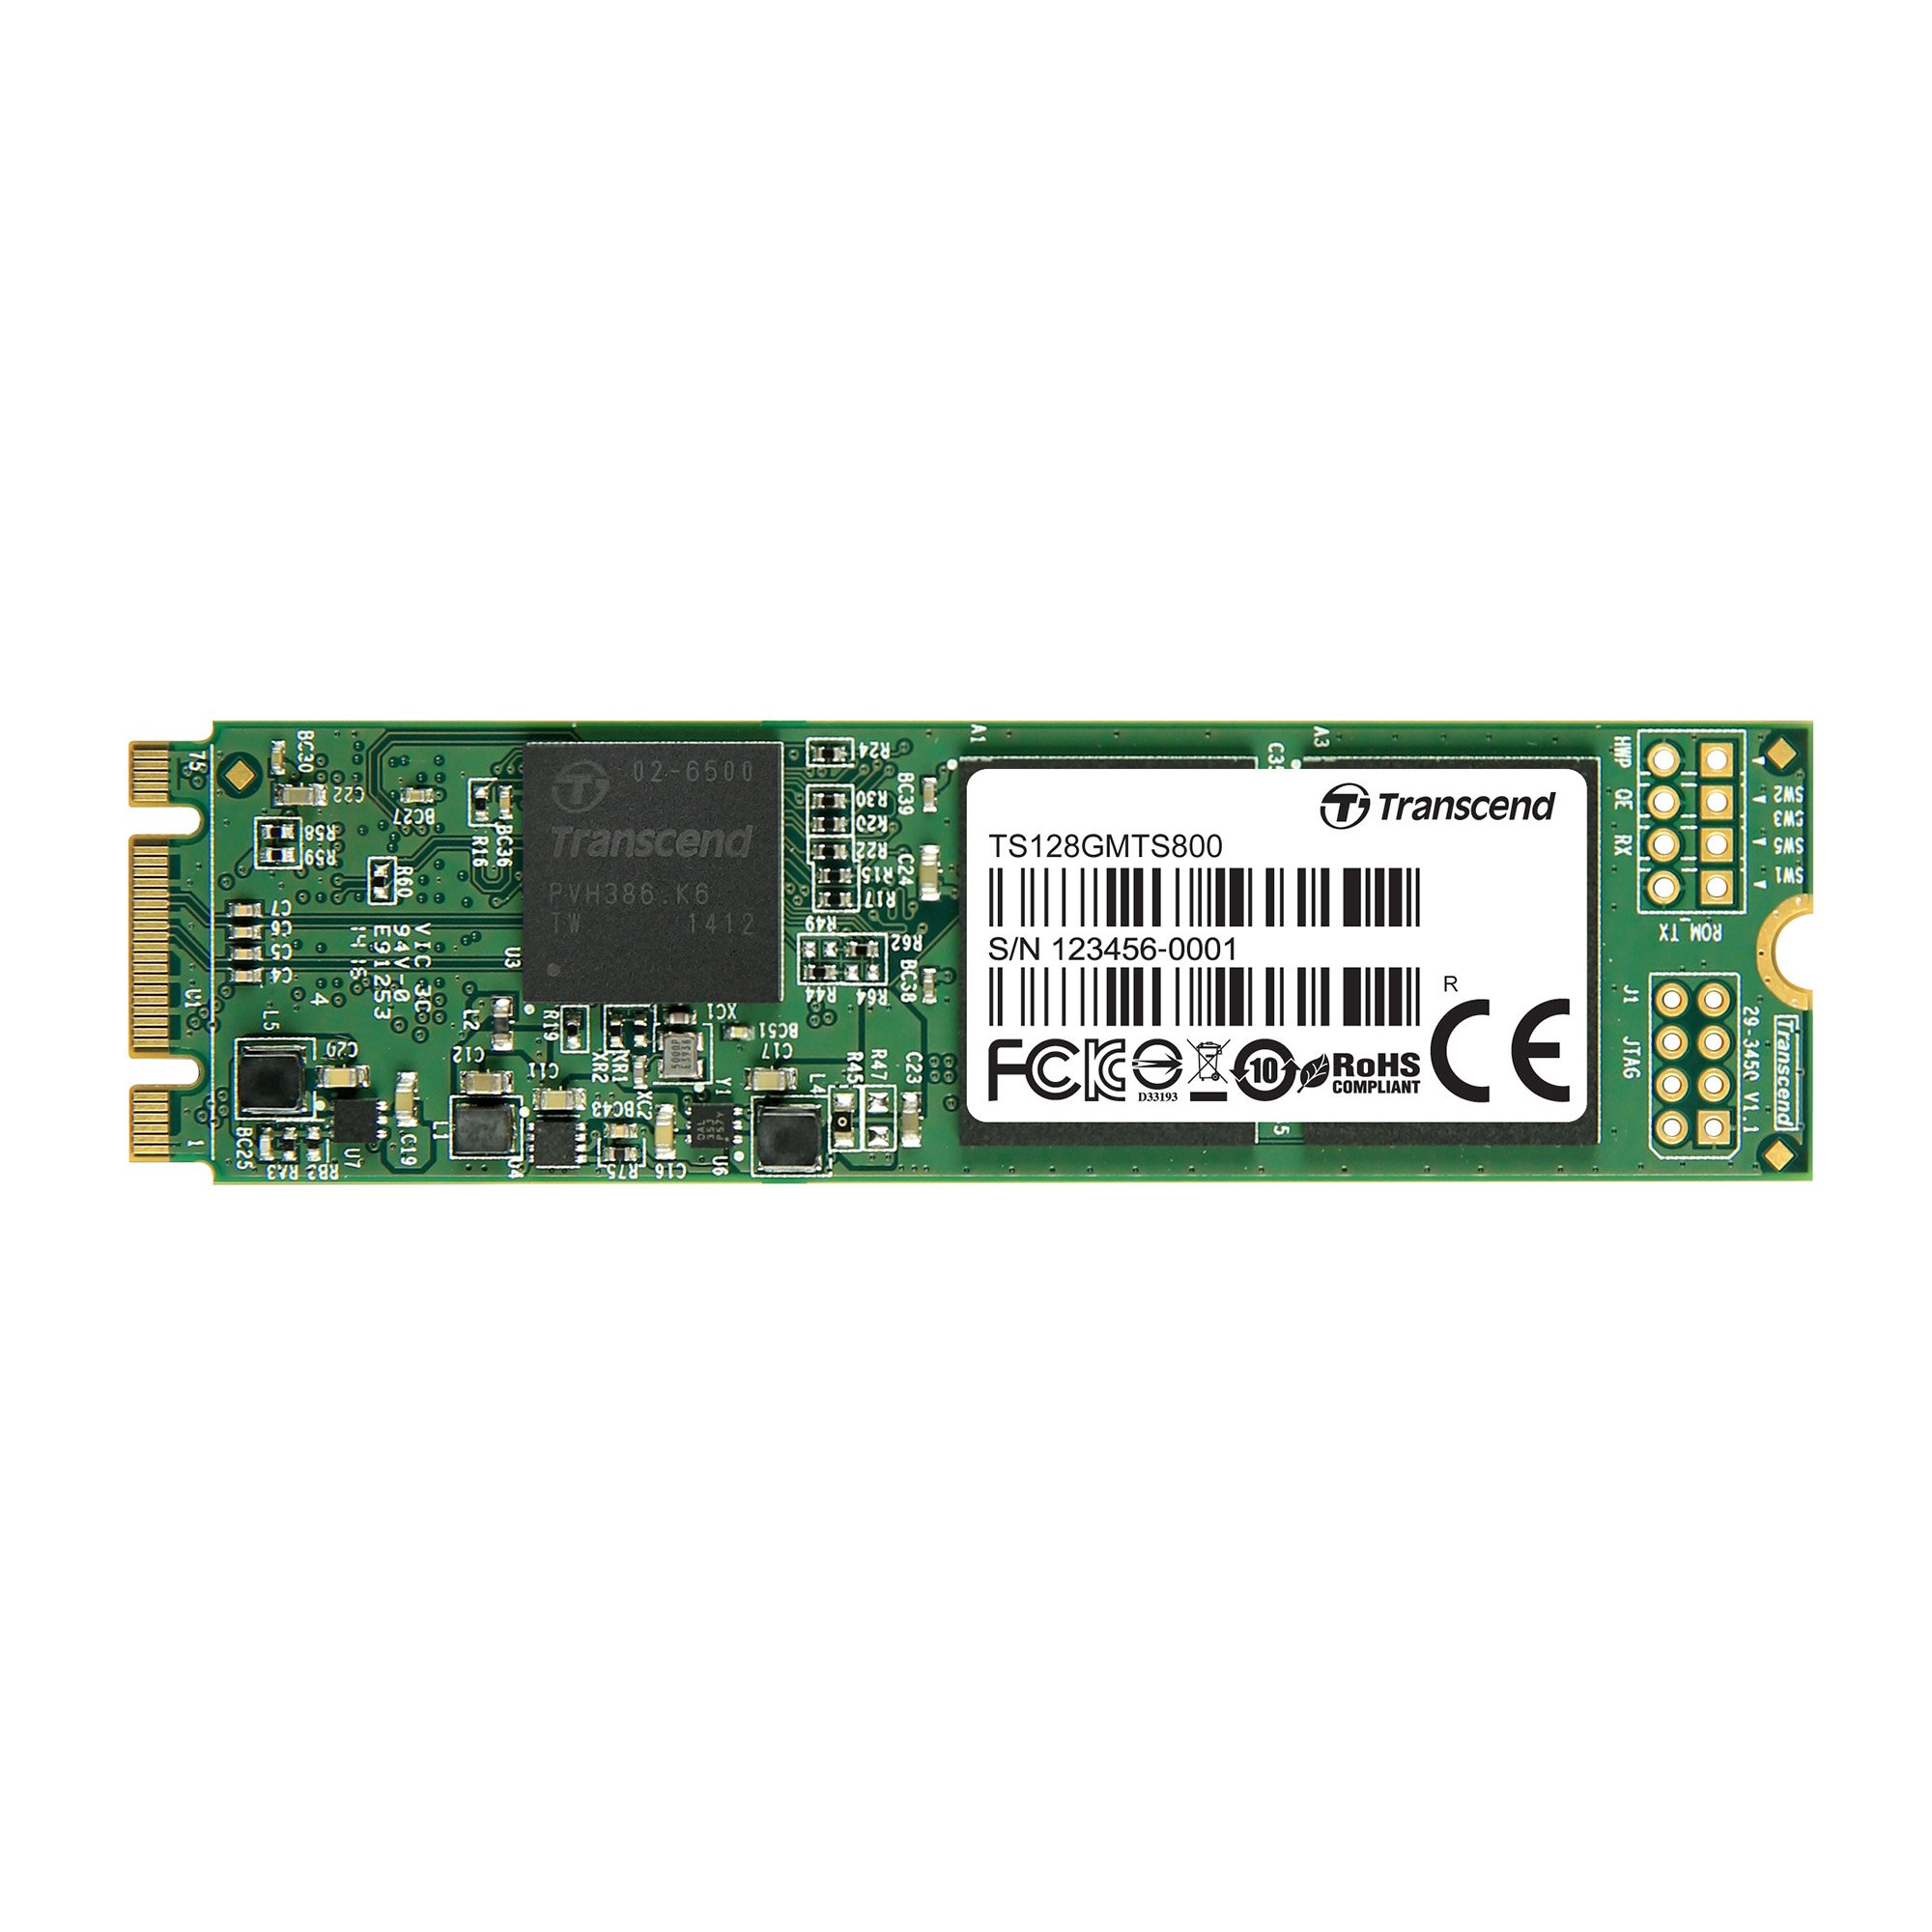 Transcend 128GB SATA III 6Gb/s MTS800 80 mm M.2 Solid State Drive (TS128GMTS800) by Transcend